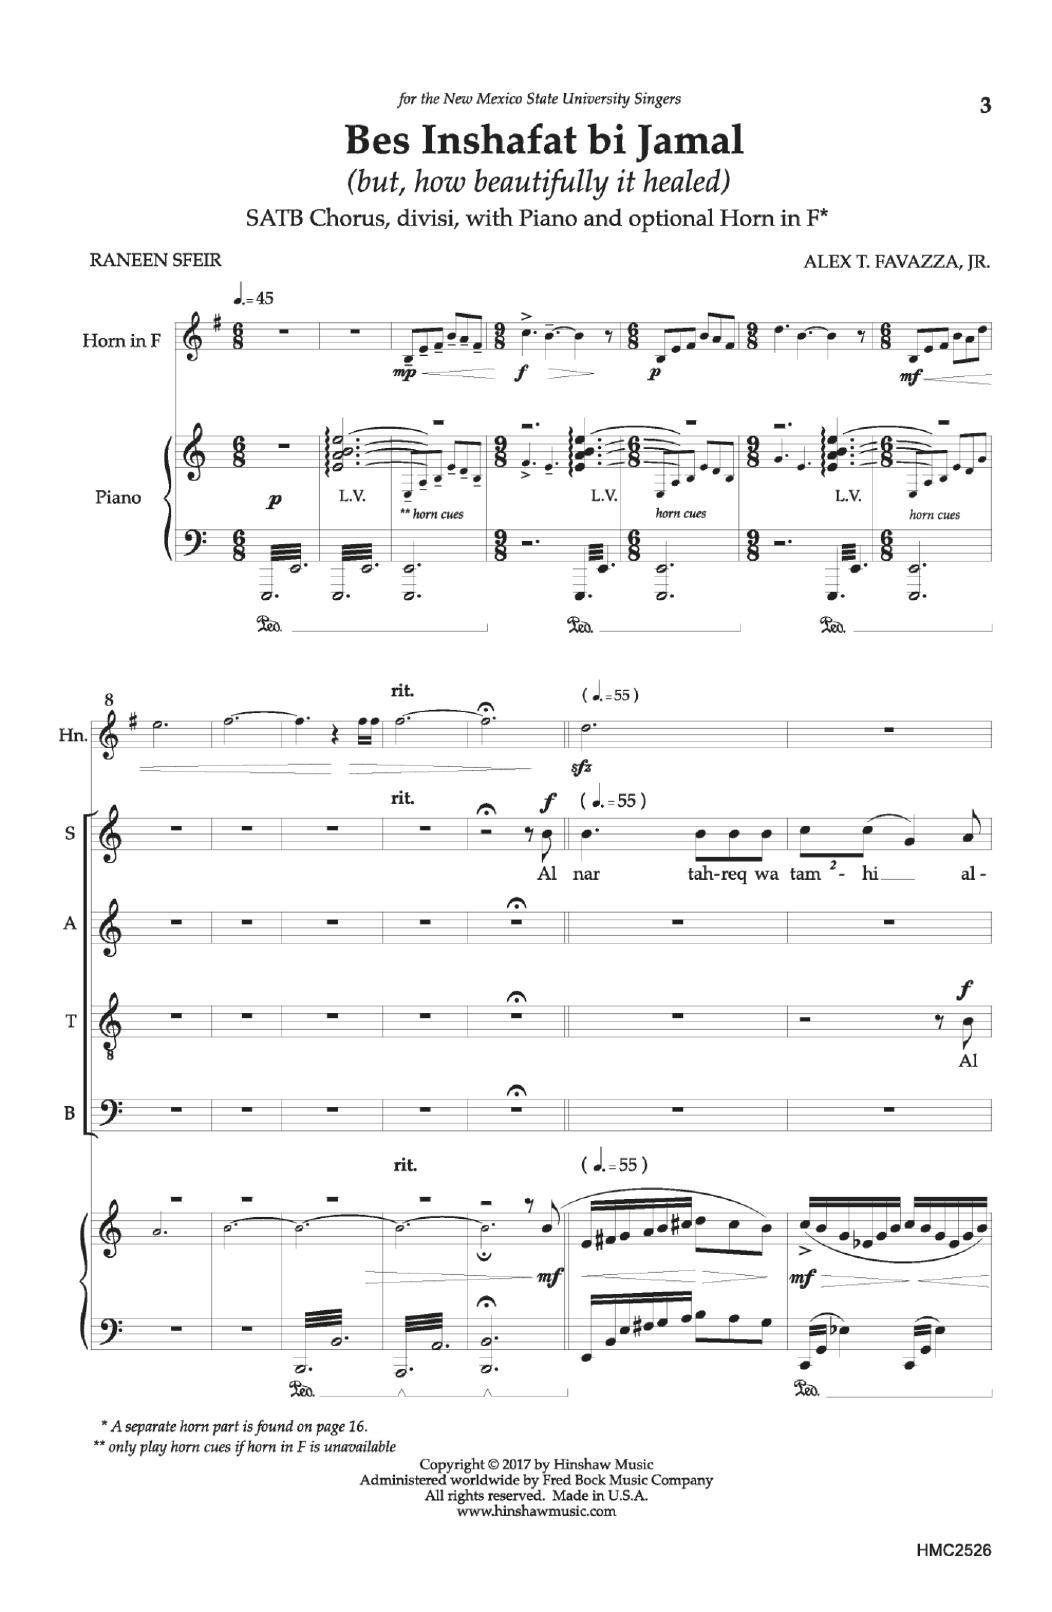 Bes Inshafat bi Jamal (but, how beautifully it healed) Sheet Music